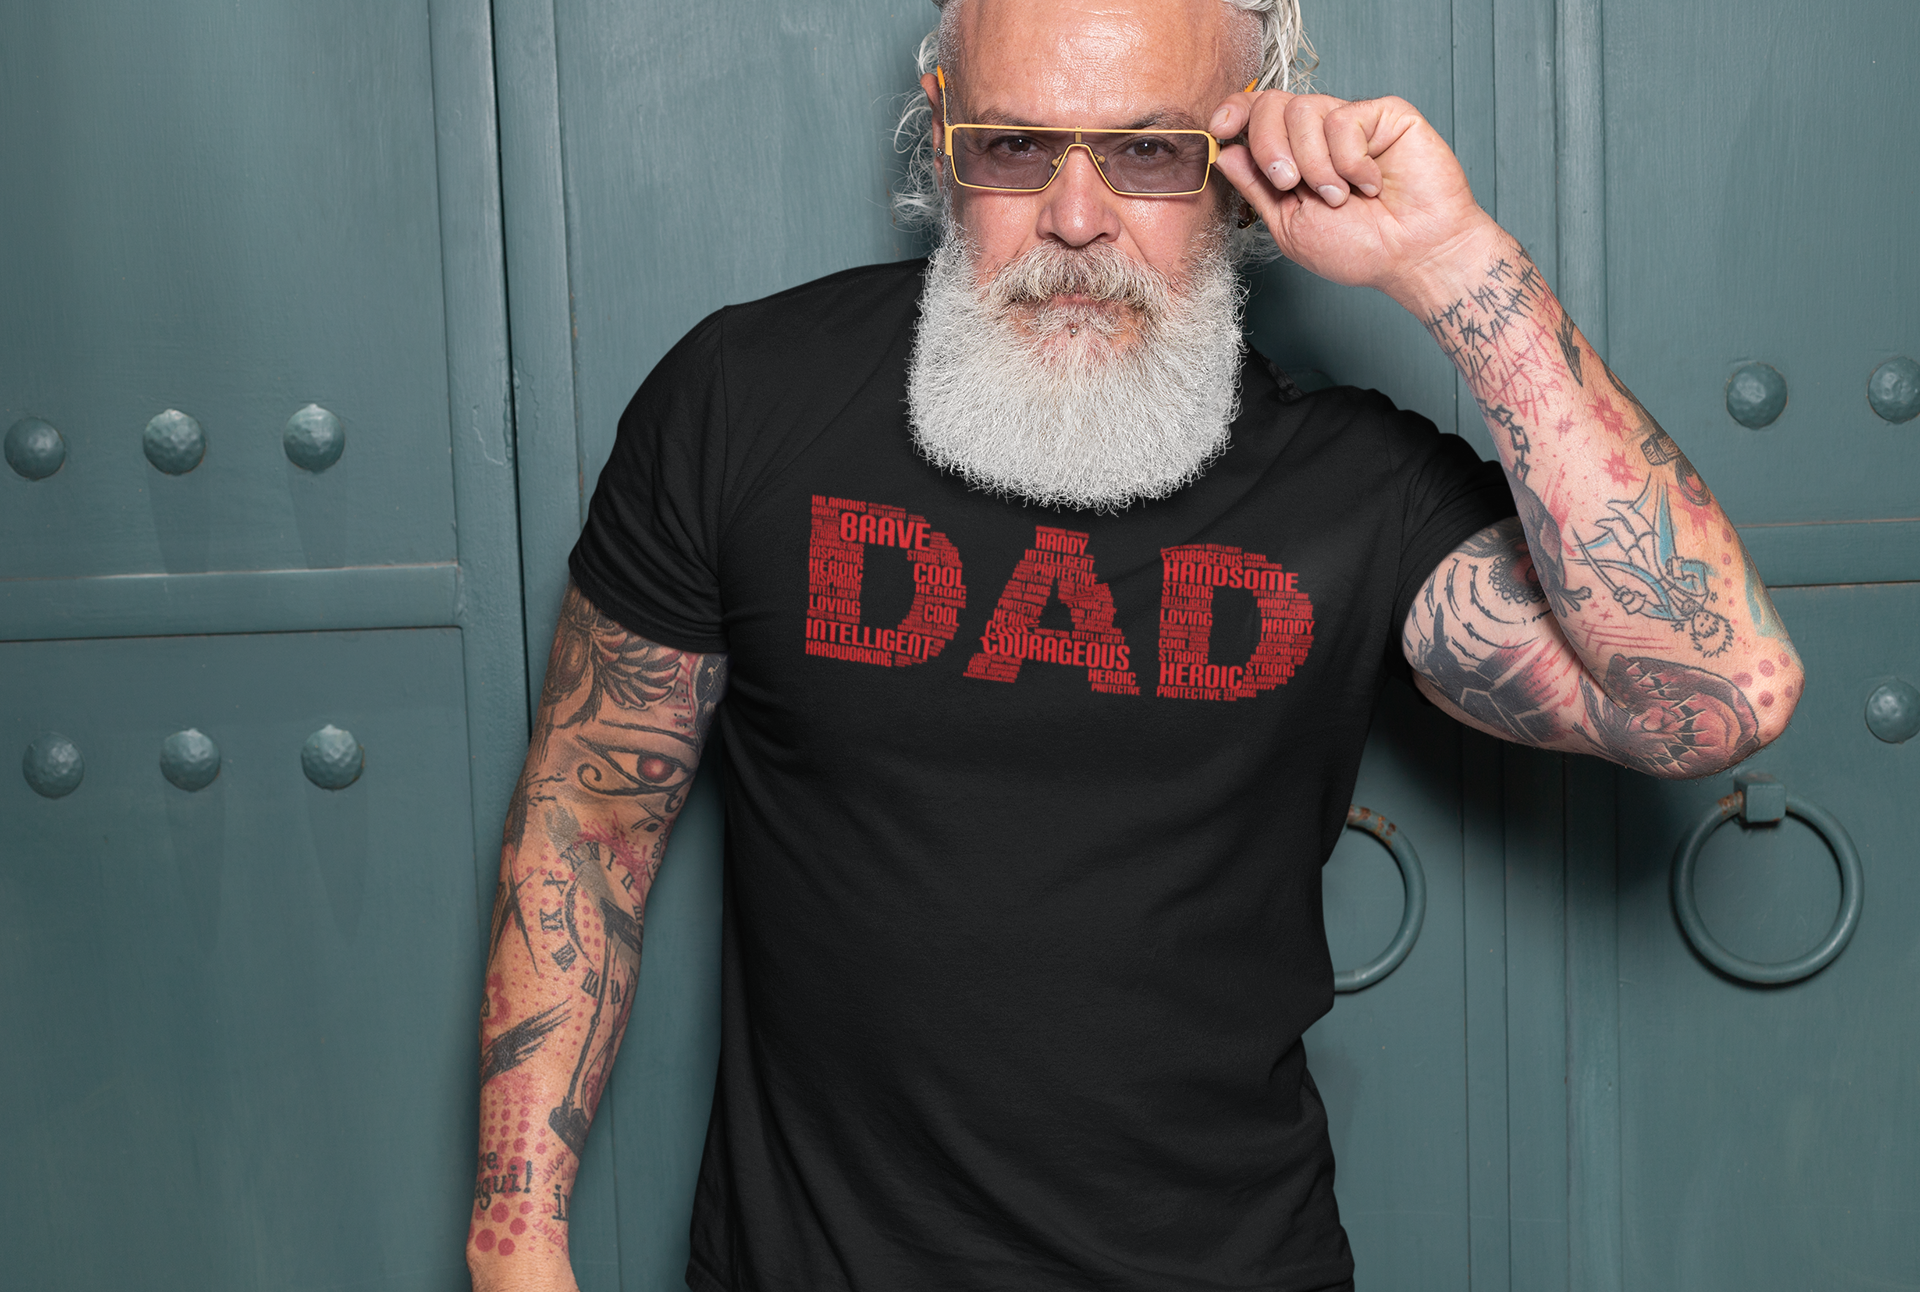 Our unique DAD statement is print on our premium unisex pre-shrunk tee. Feel free to email us at info@empoweredtee.com for sizing help, we would be happy to assist. Sizing Guide XS S M L XL 2XL 3XL 4XL - - BODY WIDTH 16.5 18 20 22 24 26 28 30 - - FULL BODY LENGTH 27 28 29 30 31 32 33 34 - - SLEEVE LENGTH 8 8.25 8.63 9.13 9.63 10.25 - - - -